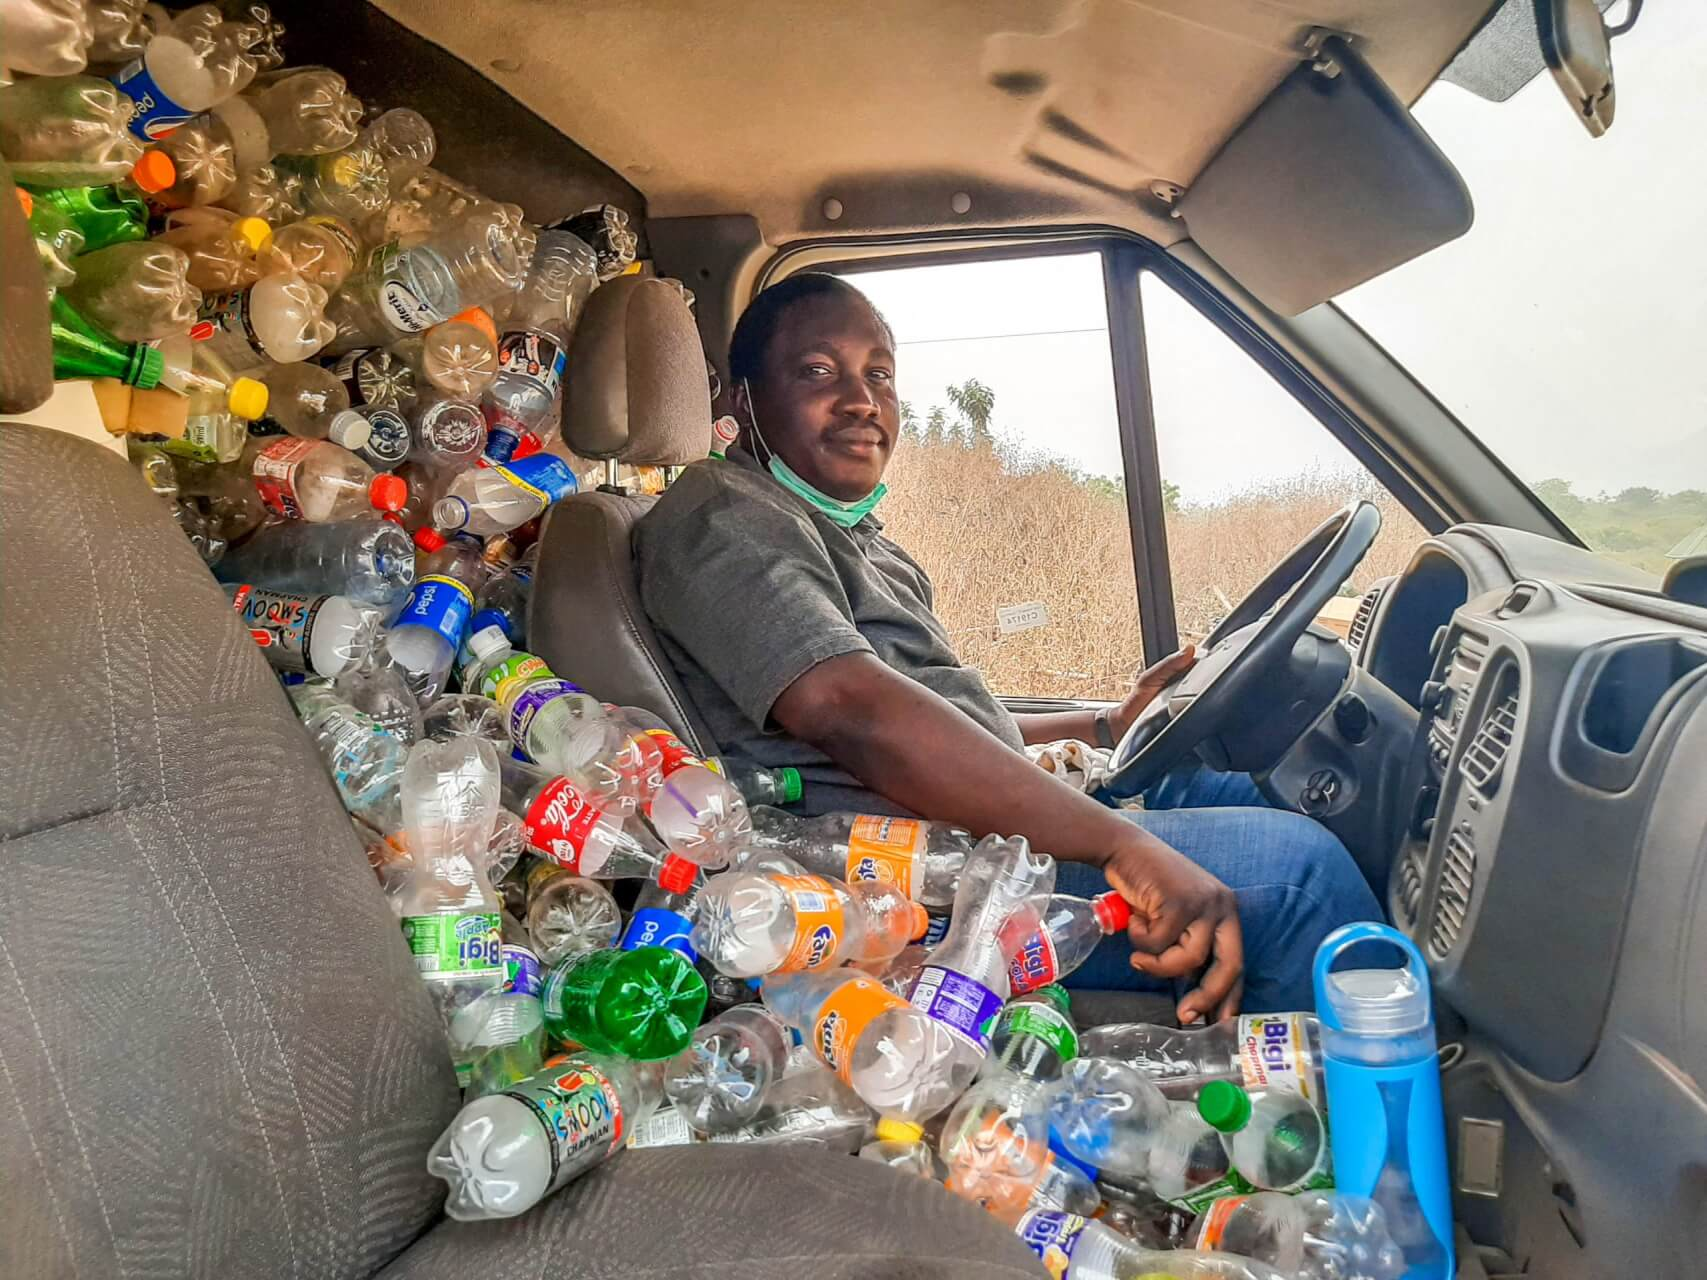 Waste is considered a nuisance, but indeed it is a mindset. From the viewpoint of this plastic recycler, in Ilorin, Nigeria, plastic waste is seen as a resource and would get a seat on the ride. Such a Wonder of Waste, by Victor Amusa